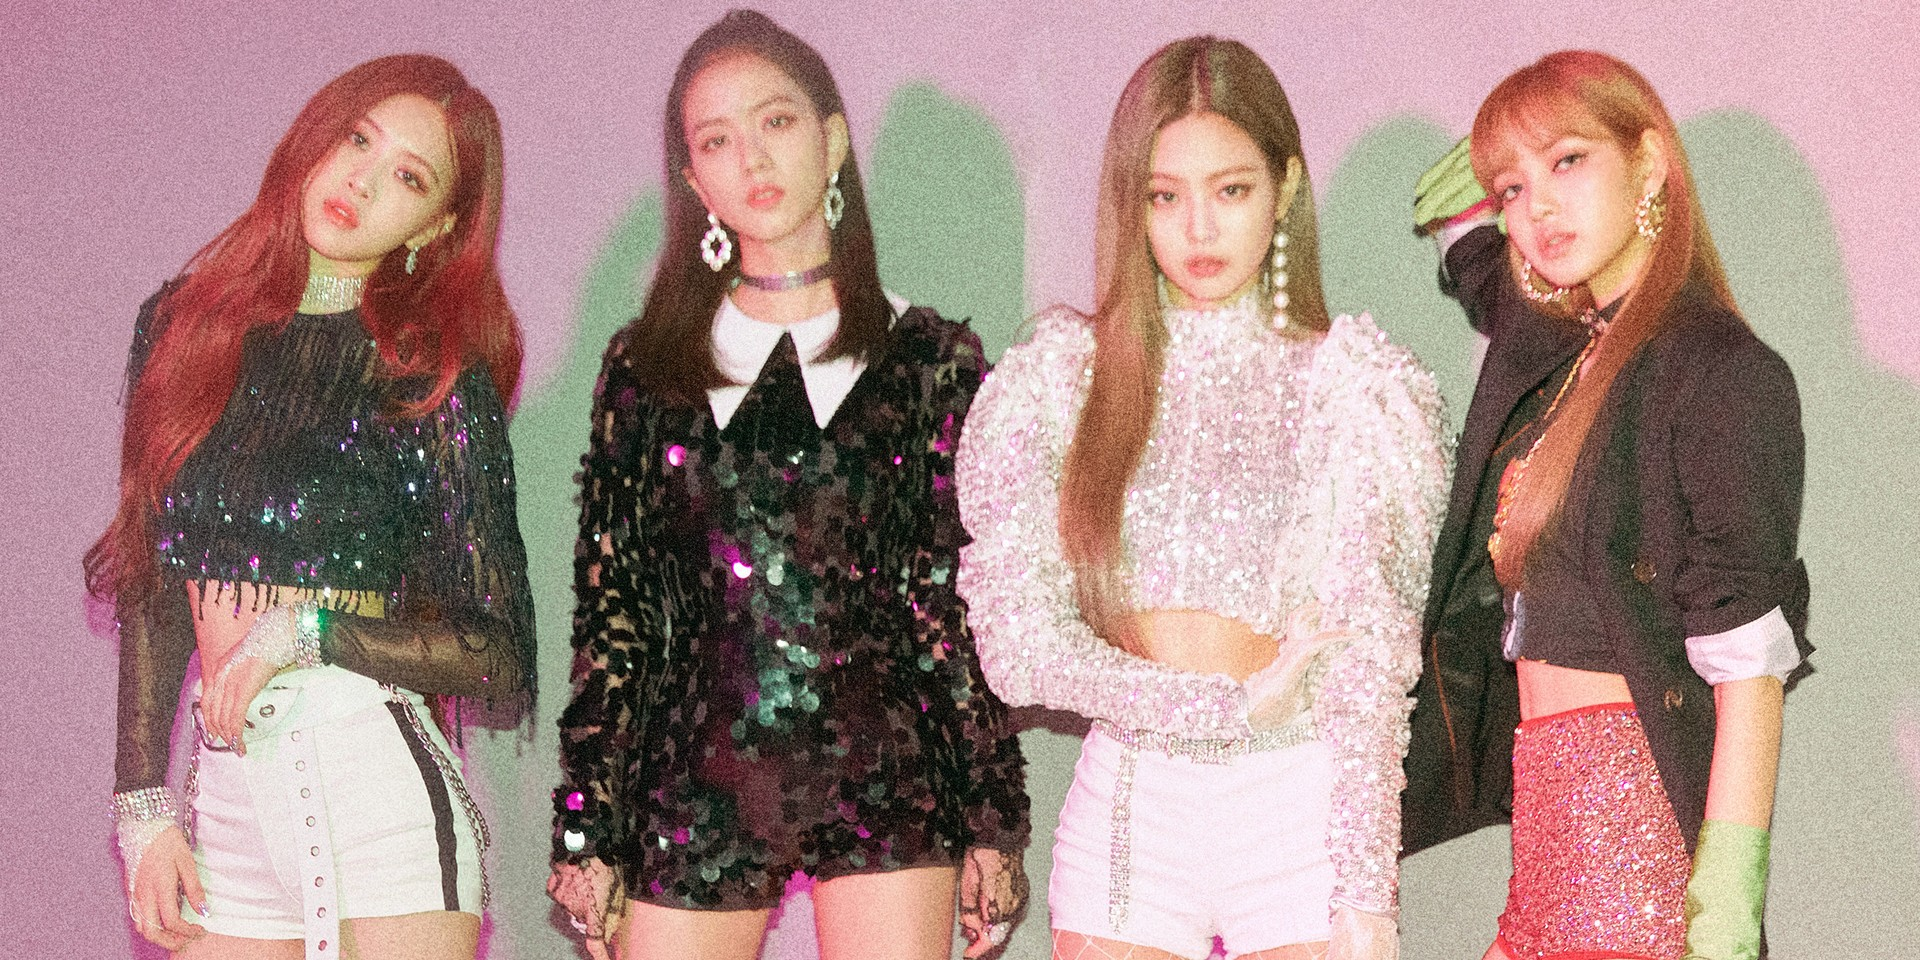 BLACKPINK becomes the first K-pop group to hit a billion views on YouTube